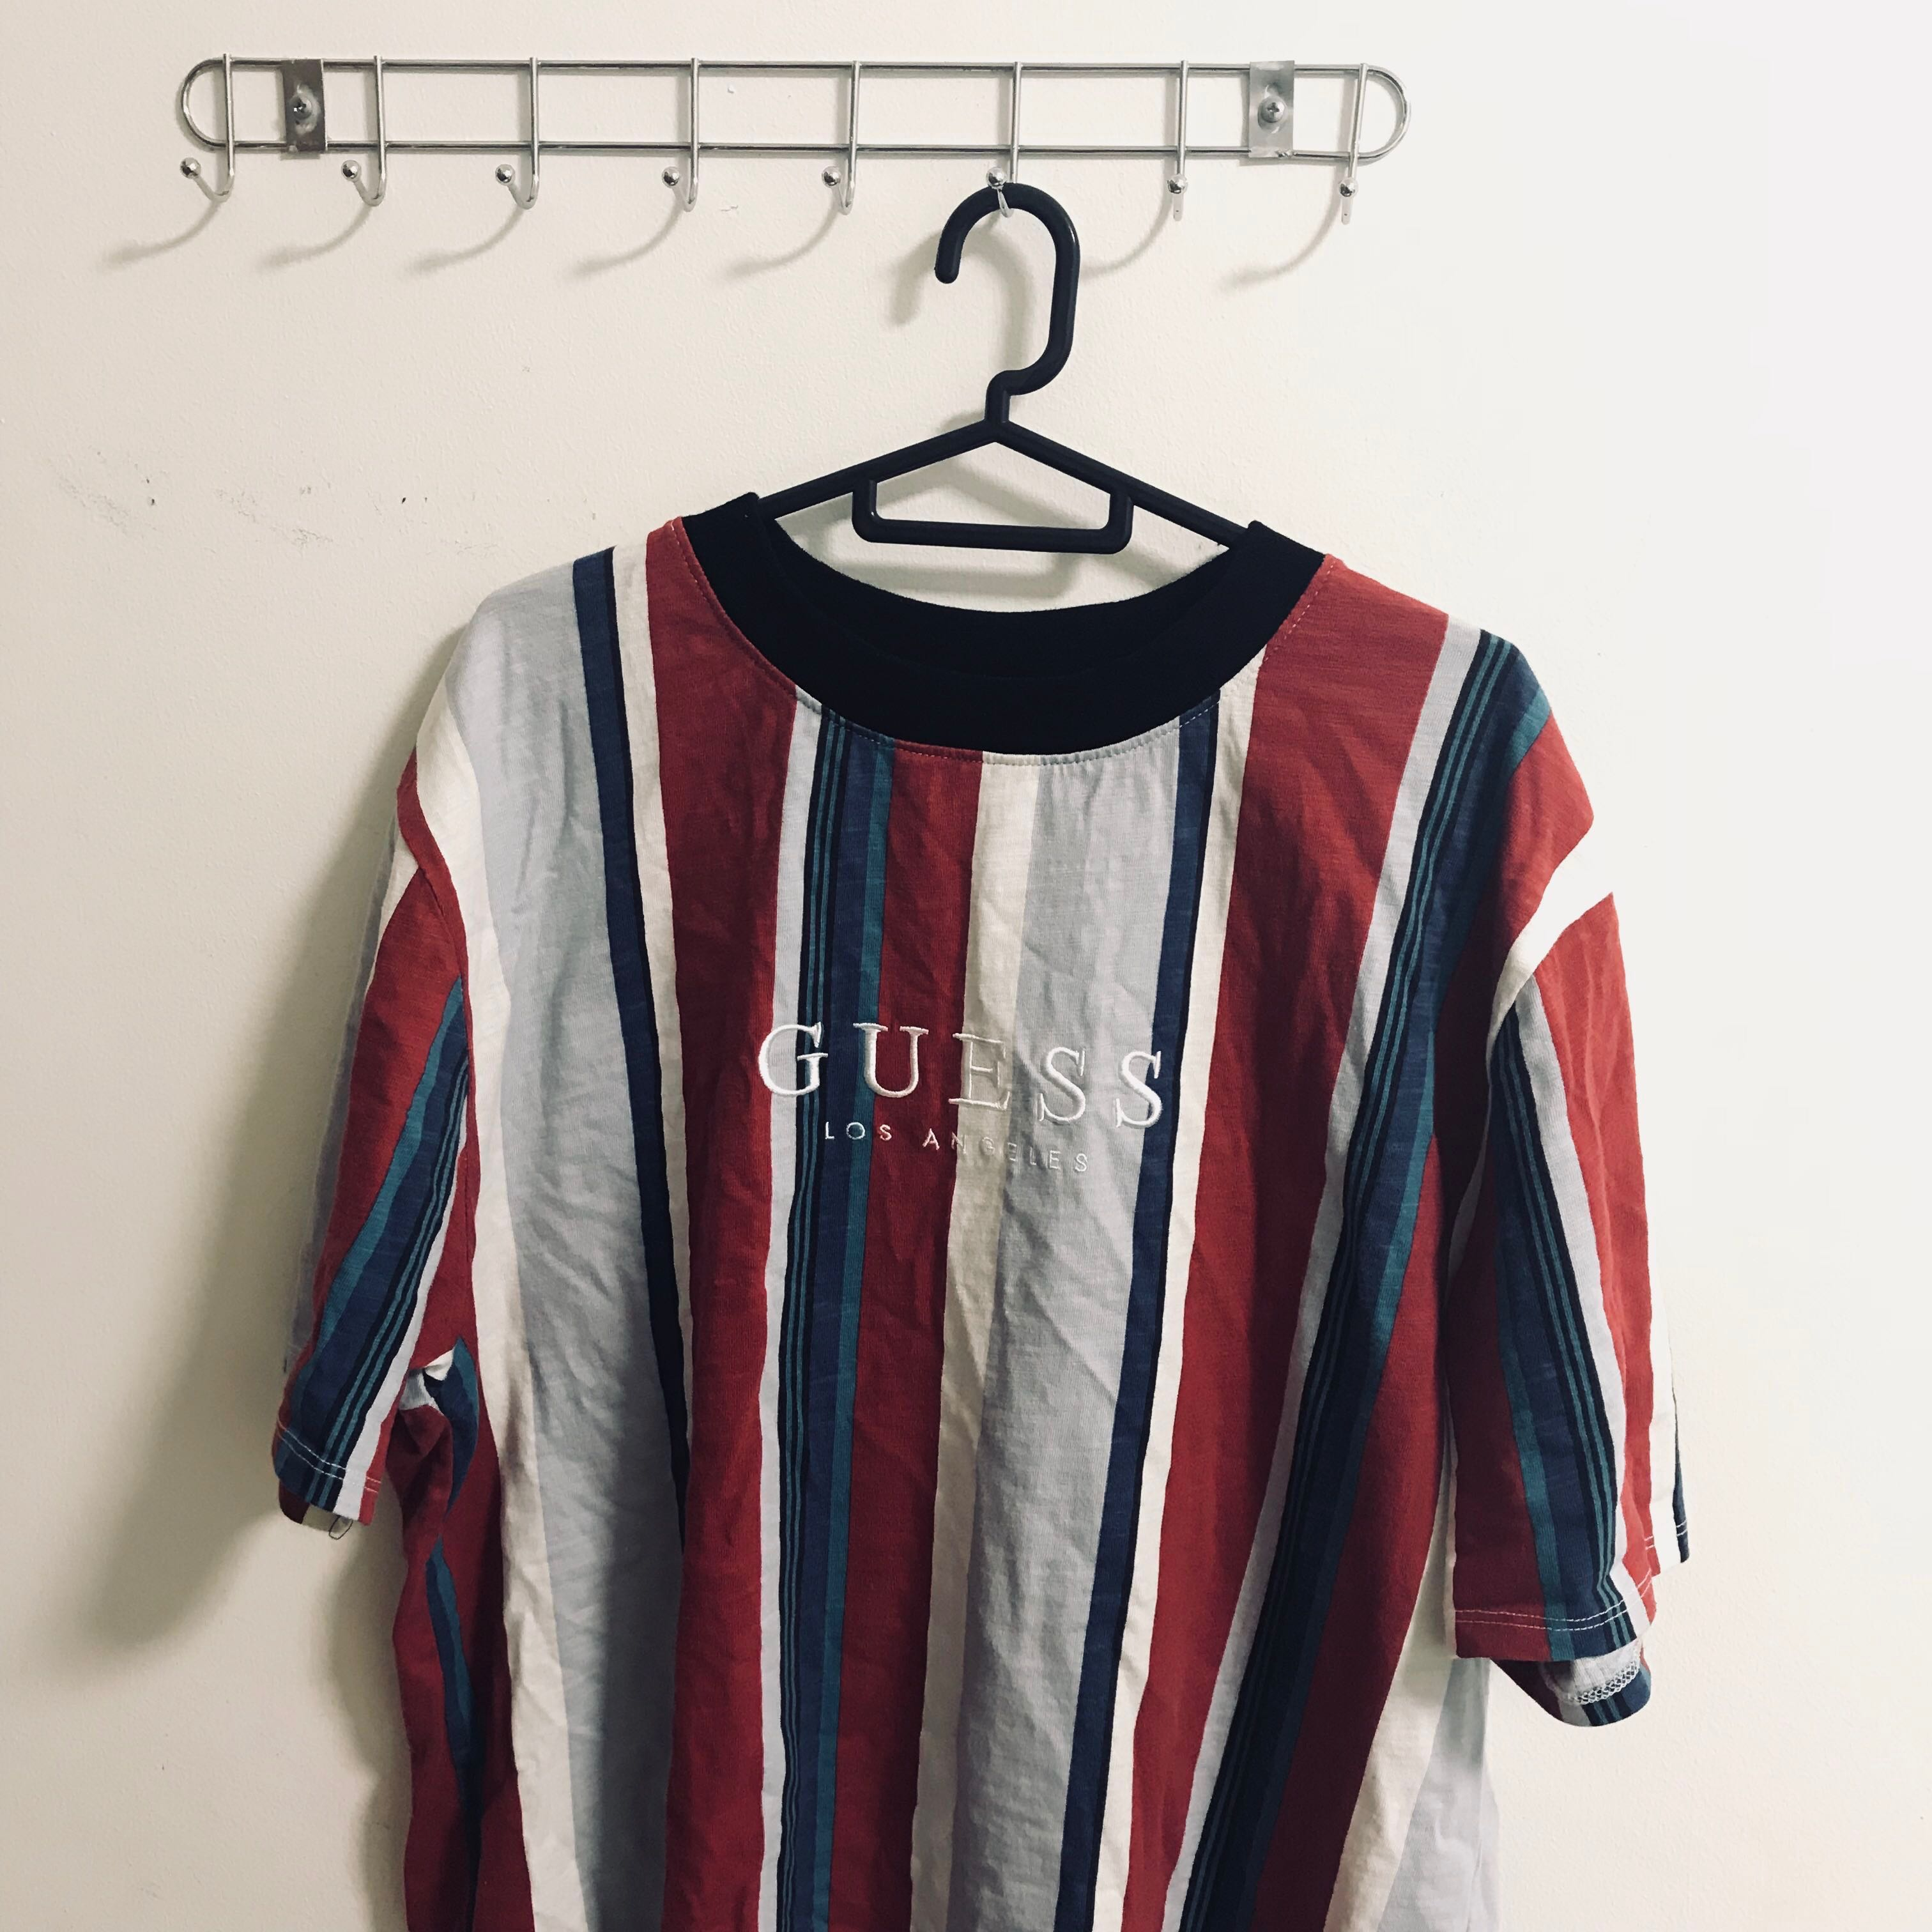 Guess Sayer Striped Shirt Men S Fashion Clothes Tops On